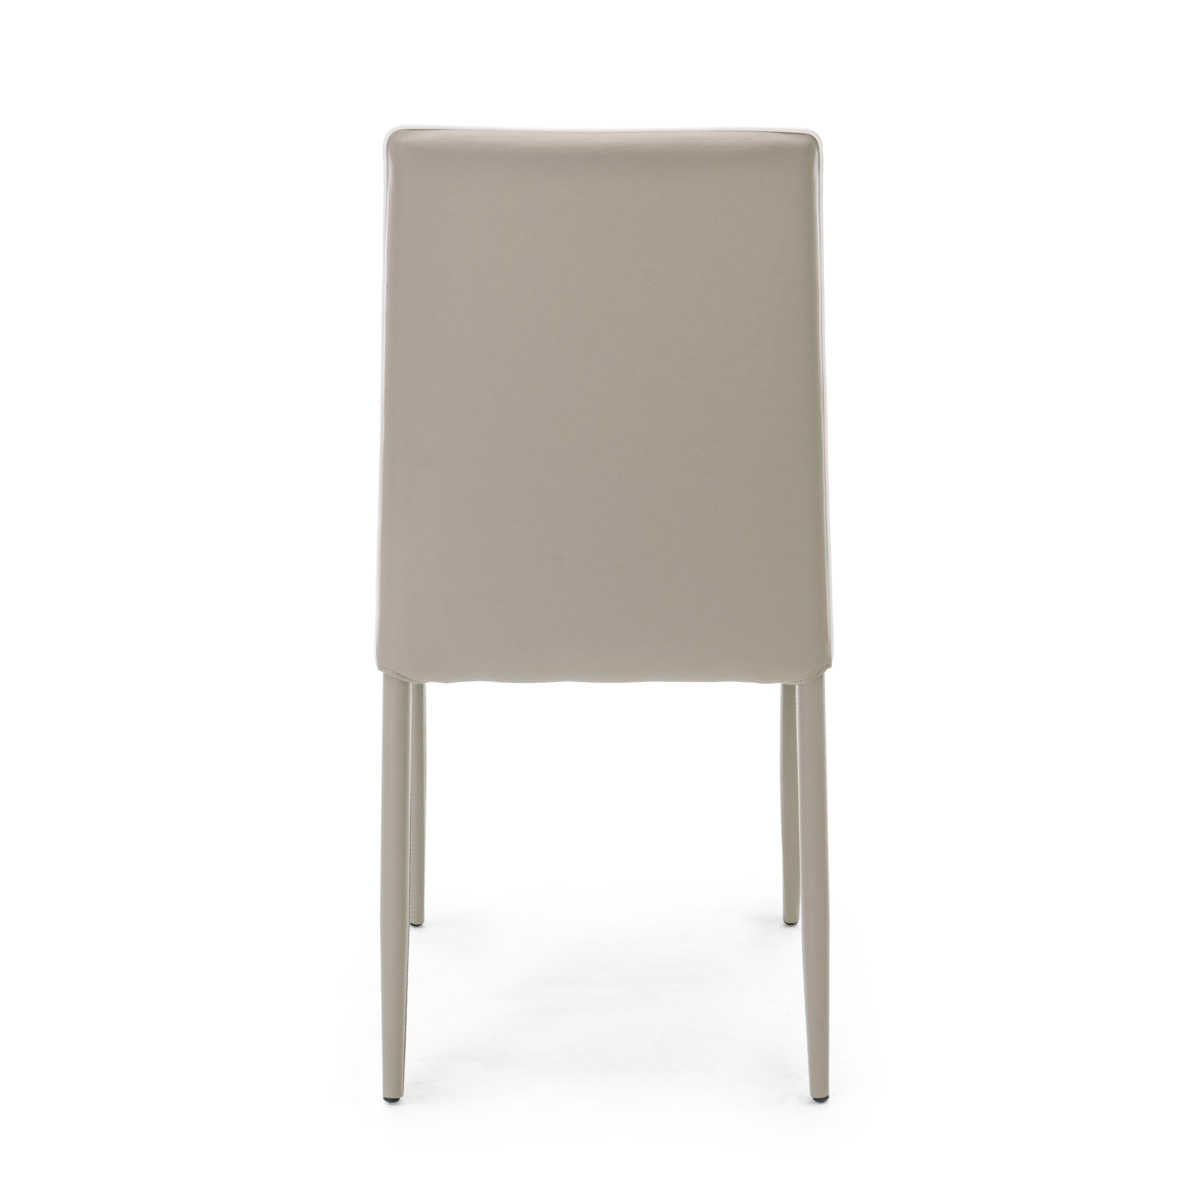 Photos 4: Bizzotto Chair covered in faux leather - tortora 0730786